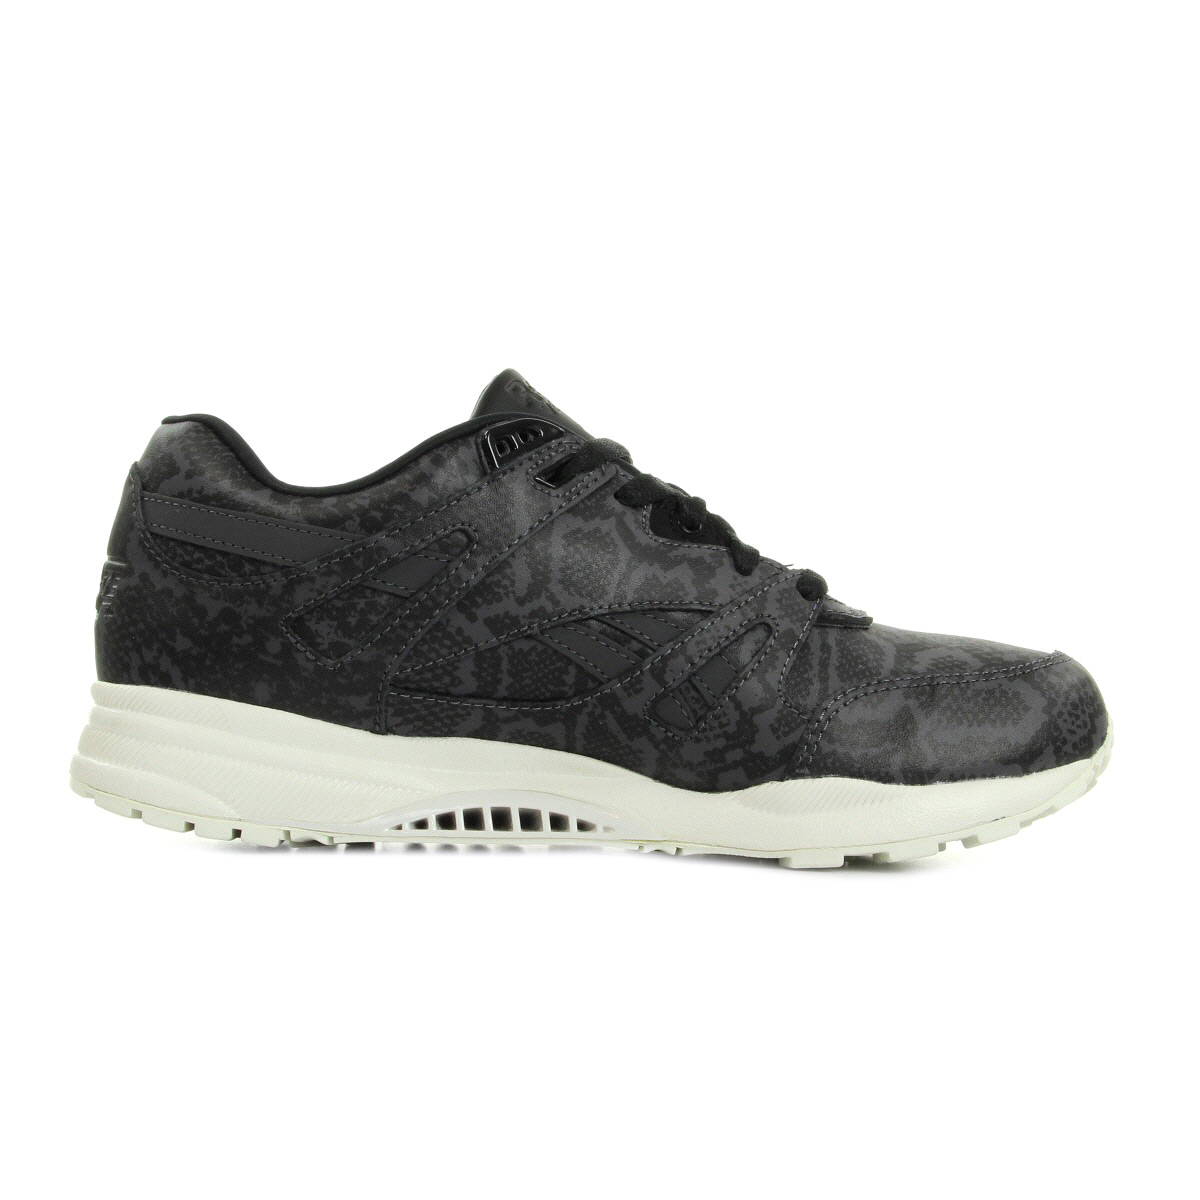 reebok ventilator snake ar1569 baskets mode femme. Black Bedroom Furniture Sets. Home Design Ideas